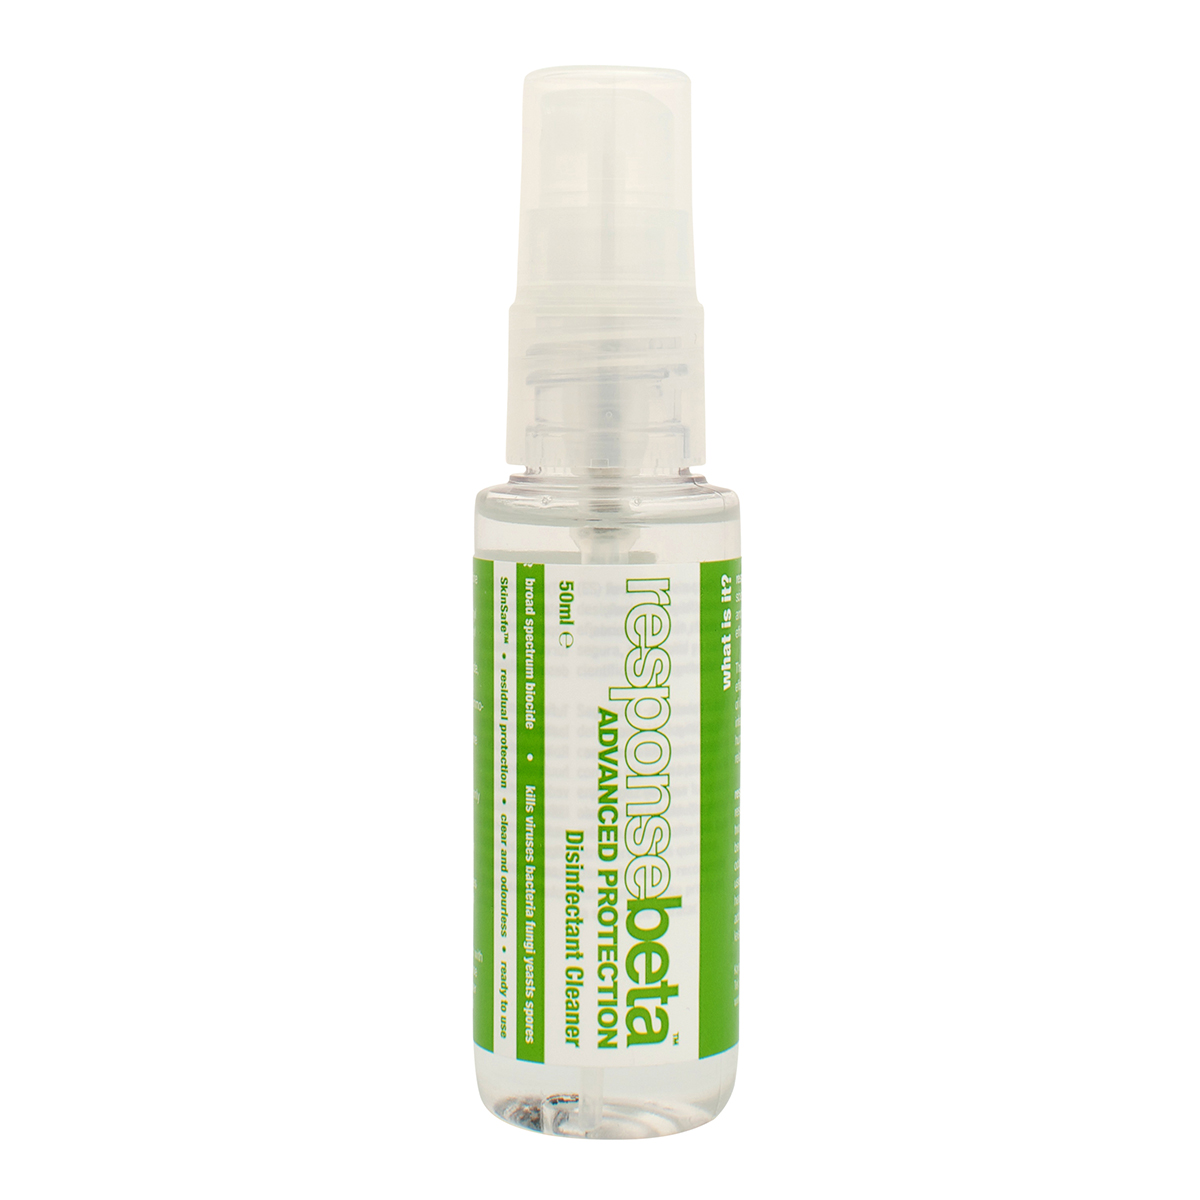 50ml Responsebeta™ Disinfectant Spray